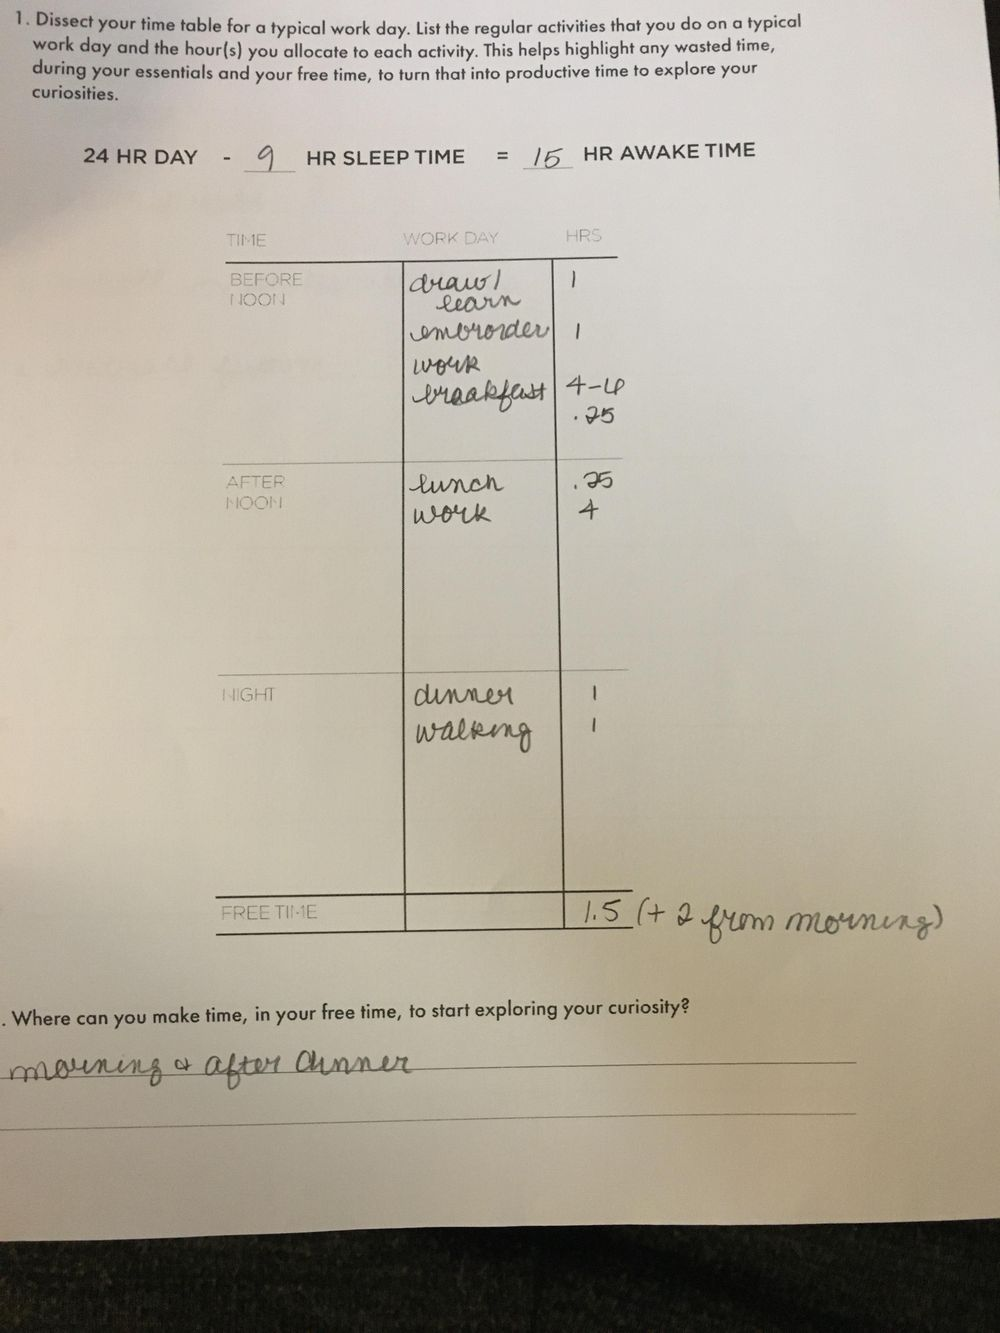 Class Workbook - image 4 - student project